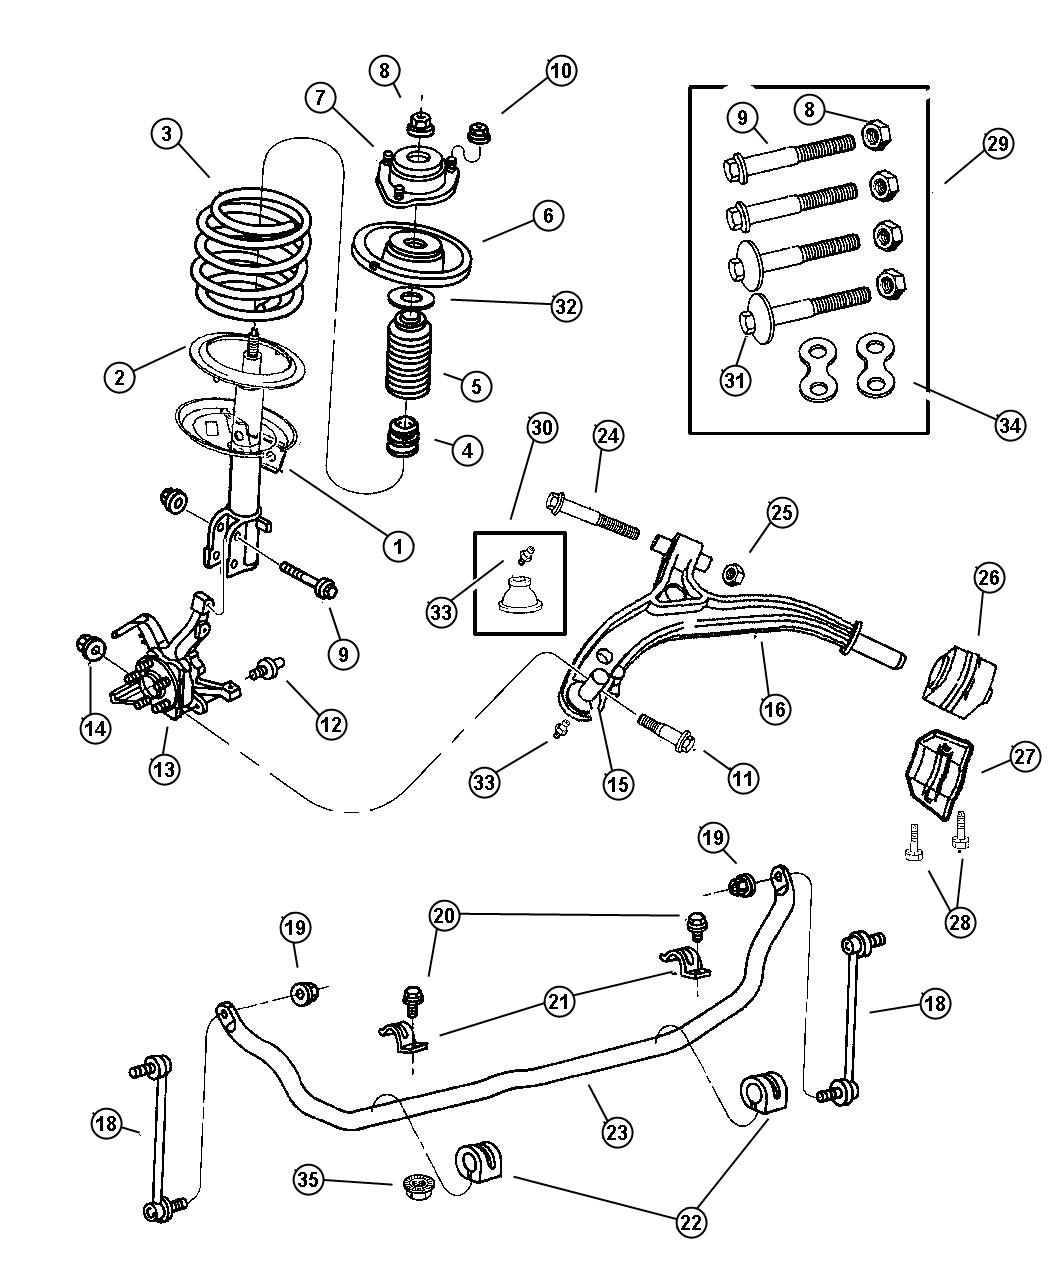 Ignition Wiring Diagram For 2000 Dodge Caravan – readingrat besides Dodge Caravan Wiring Schematic Pictures to Pin on Pinterest together with 2001 Dodge Durango Stereo Wiring Diagram   Solidfonts furthermore  moreover 99 alternator wiring   DodgeForum further 2002 Dodge Caravan Wiring Diagram   Wiring Diagram And Hernes furthermore  furthermore 99 Kenworth Wiring Diagrams Wiring Wiring Diagrams Image Database besides 2005 Dodge Neon Wiring Diagram   Solidfonts additionally 1997 Honda Accord 2 2L MFI SOHC 4cyl   Repair Guides   Wiring likewise Dodge Caravan Questions   where is the fuse for the back brake. on 99 dodge caravan wiring diagram